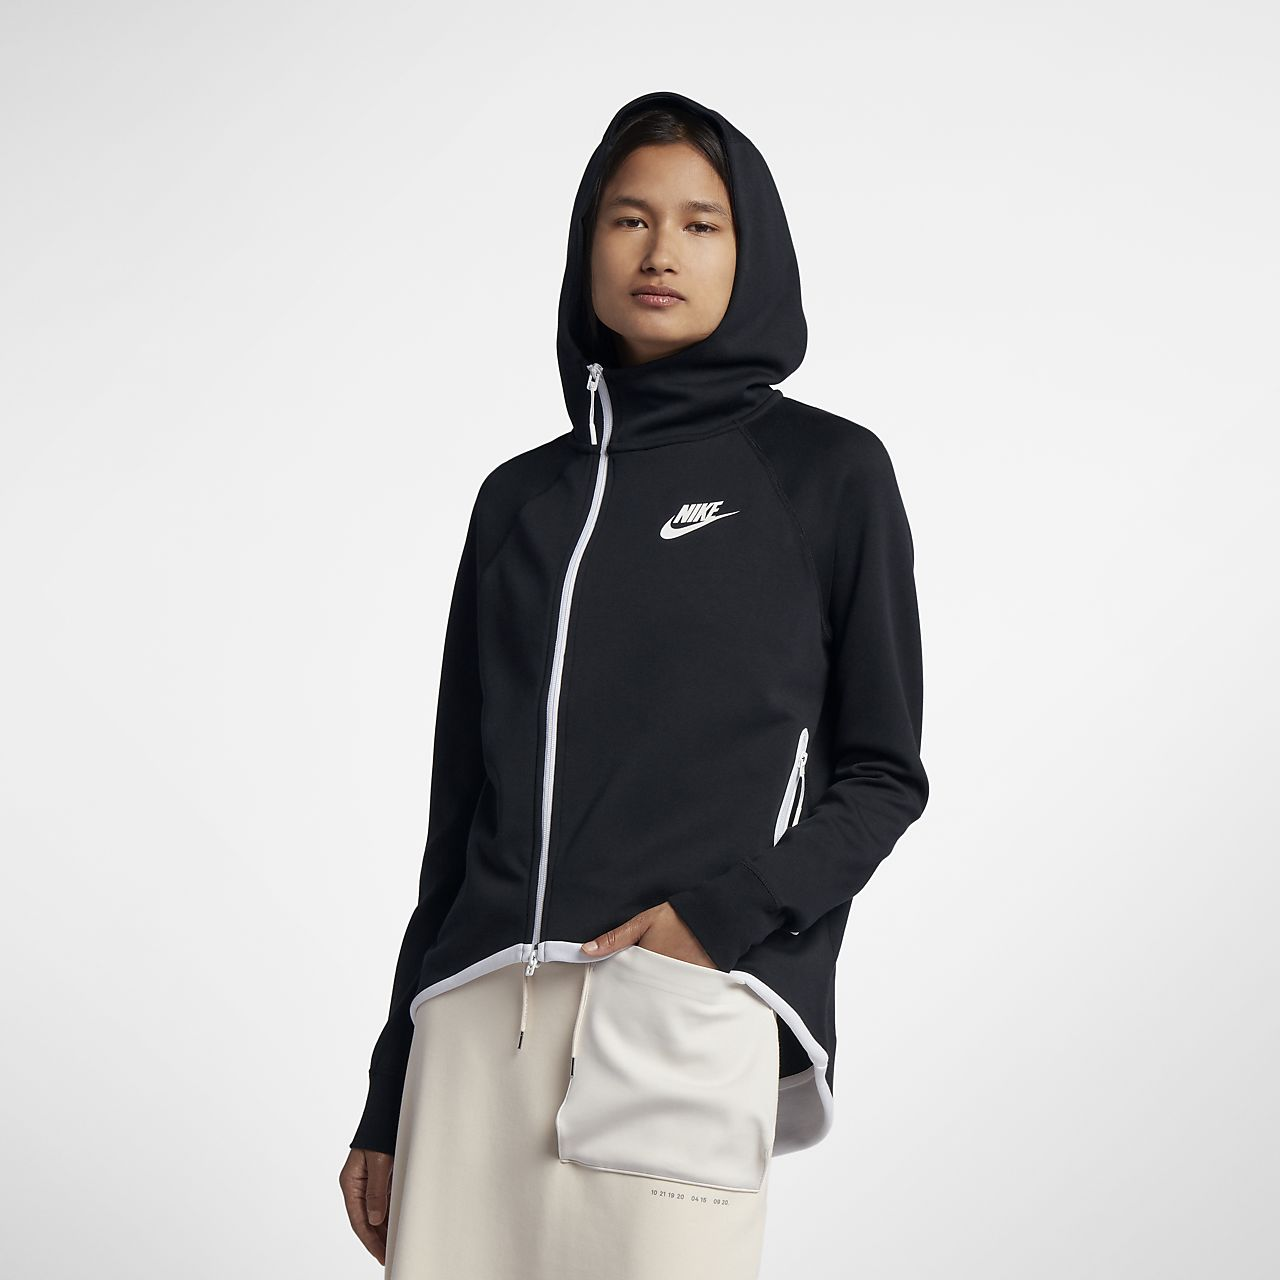 0162ff5a2de7 Nike Sportswear Tech Fleece Women s Full-Zip Cape. Nike.com